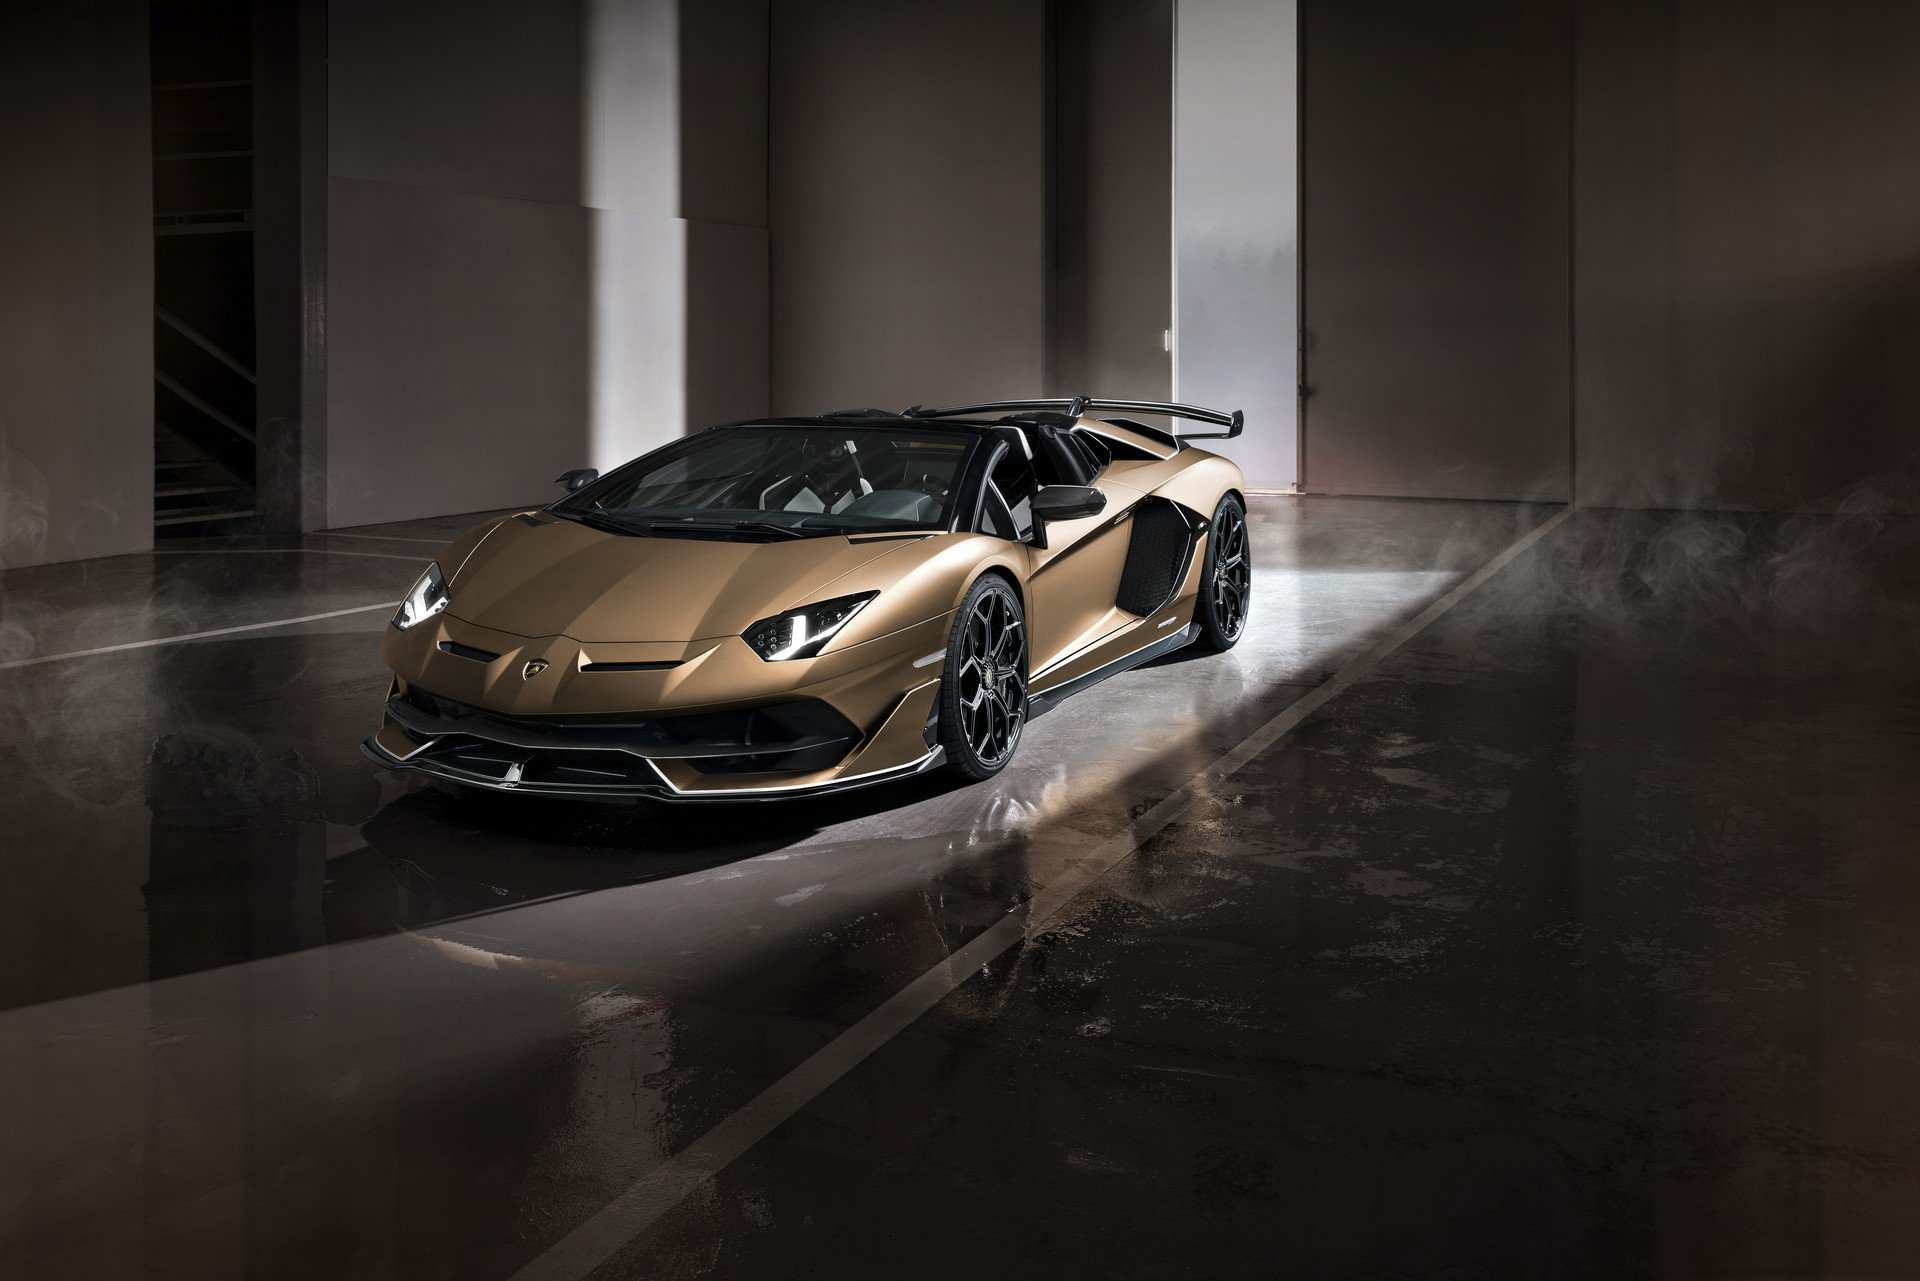 37 A 2020 Lamborghini Aventador Price Performance And New Engine